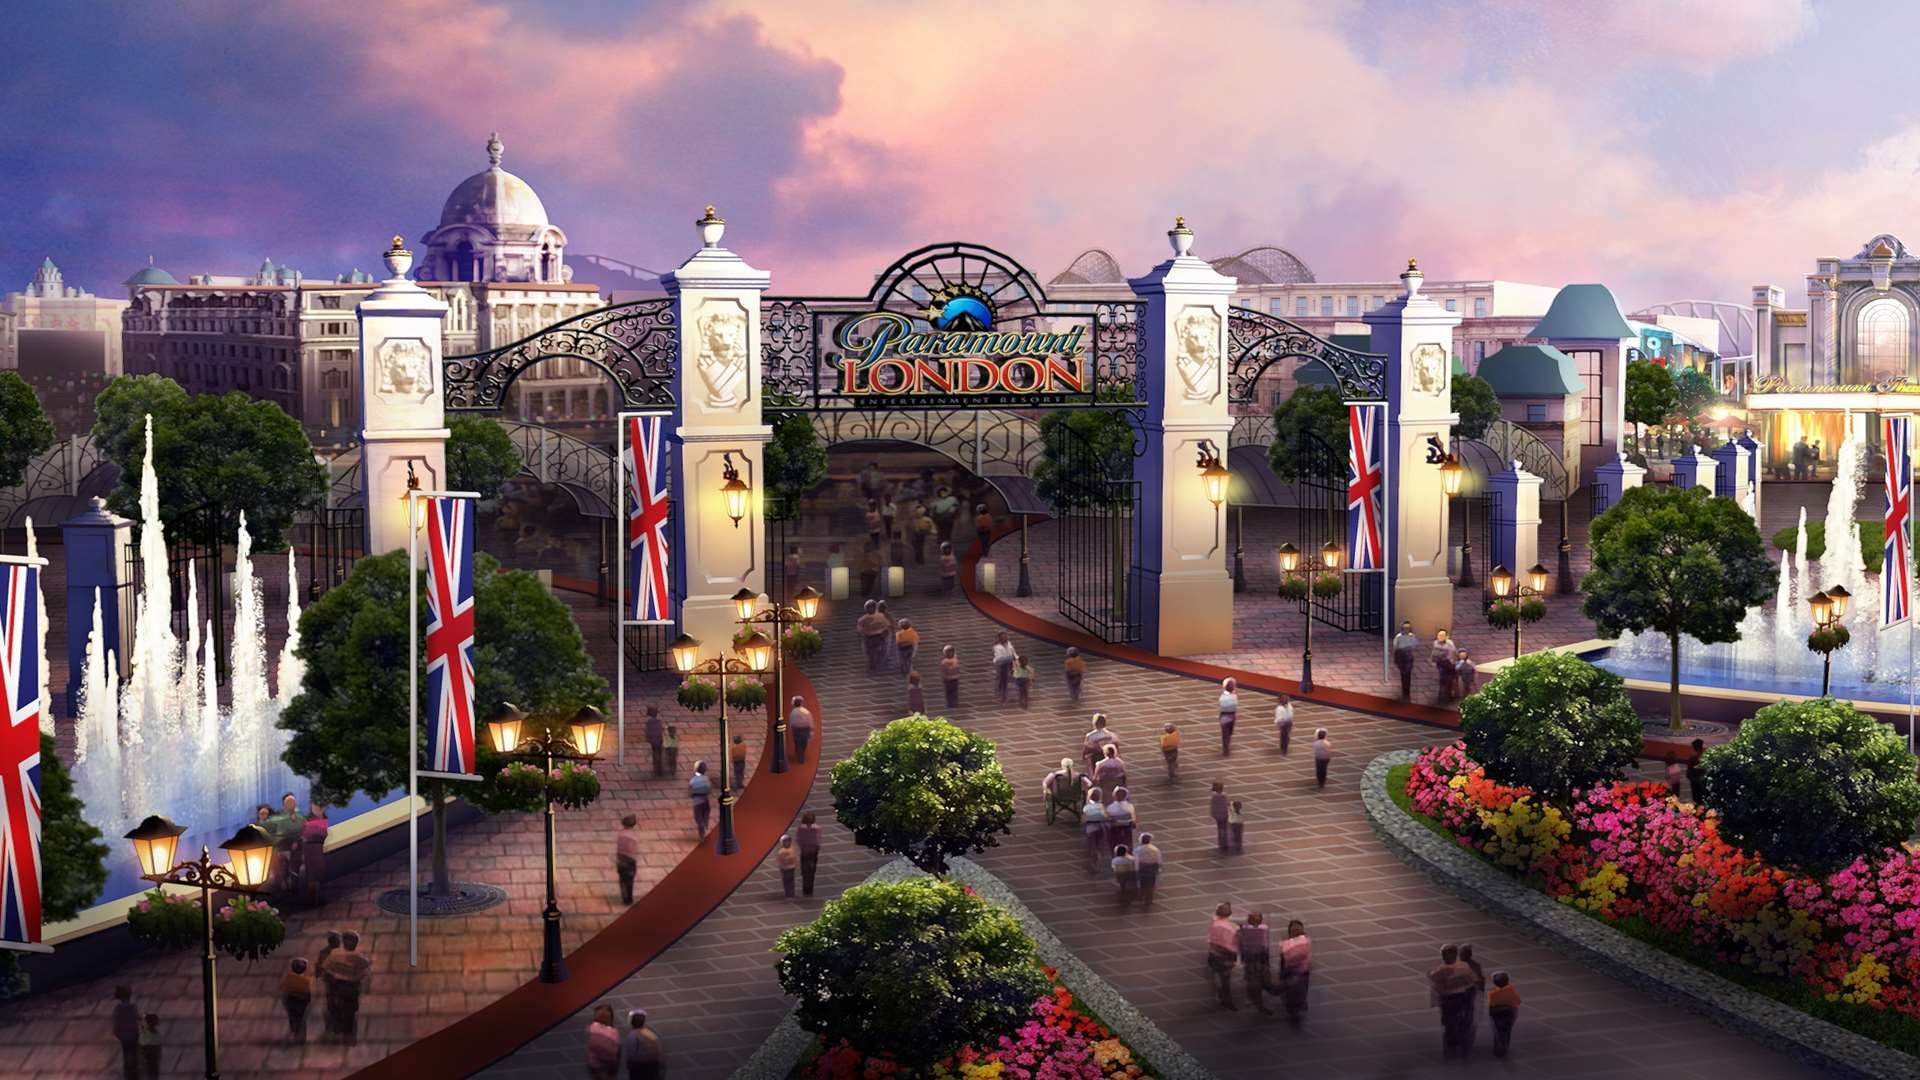 An artist's impression of plans for the London Paramount entertainment resort